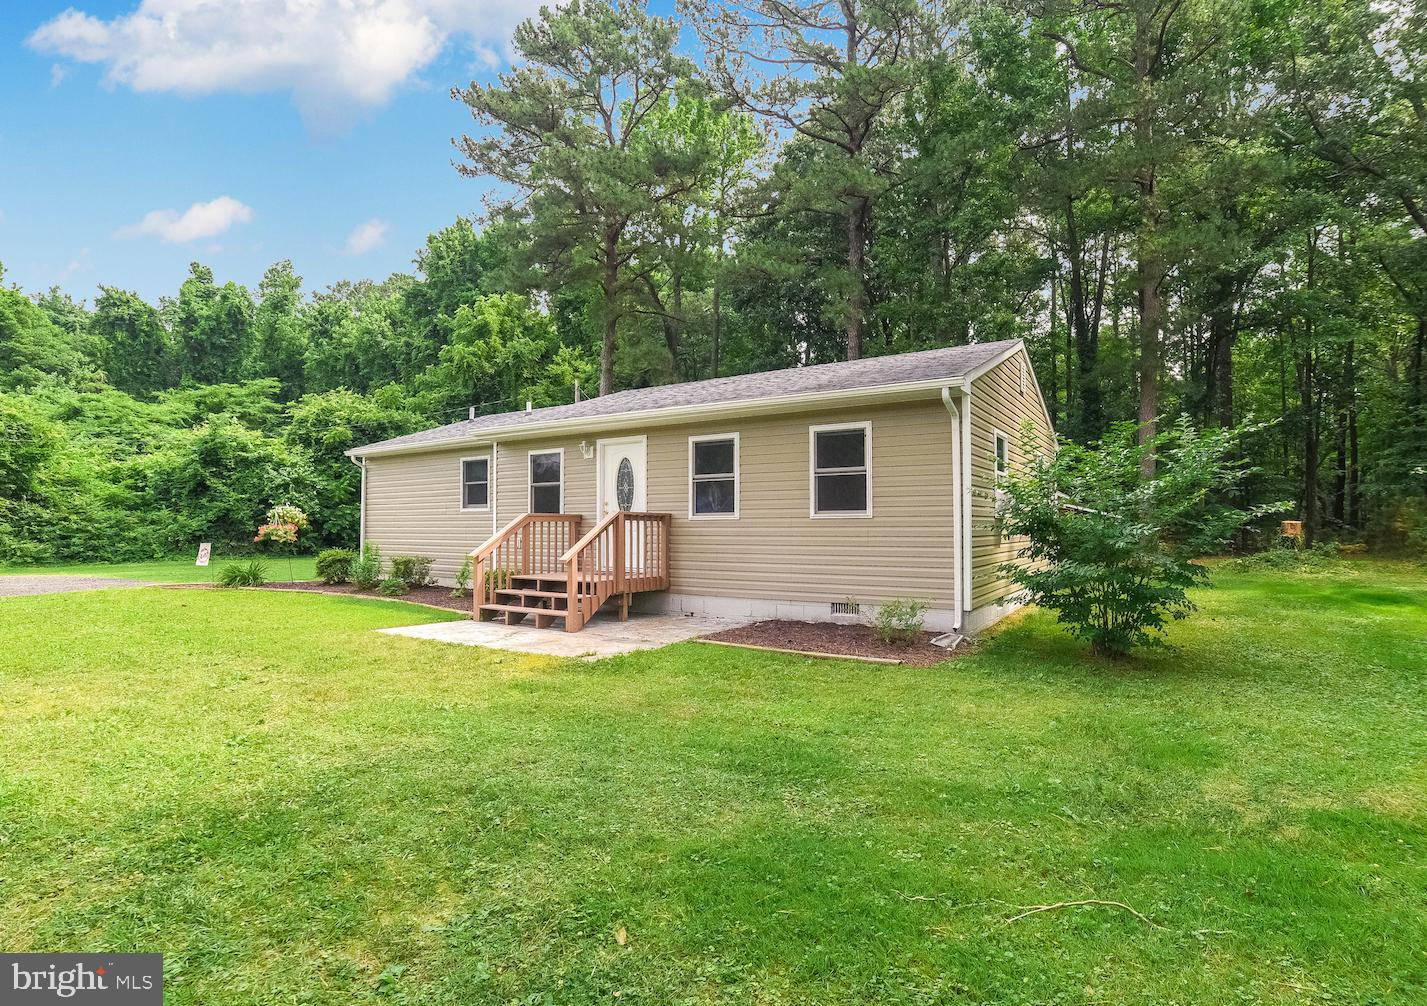 20350 COLTONS POINT ROAD, COLTONS POINT, MD 20626